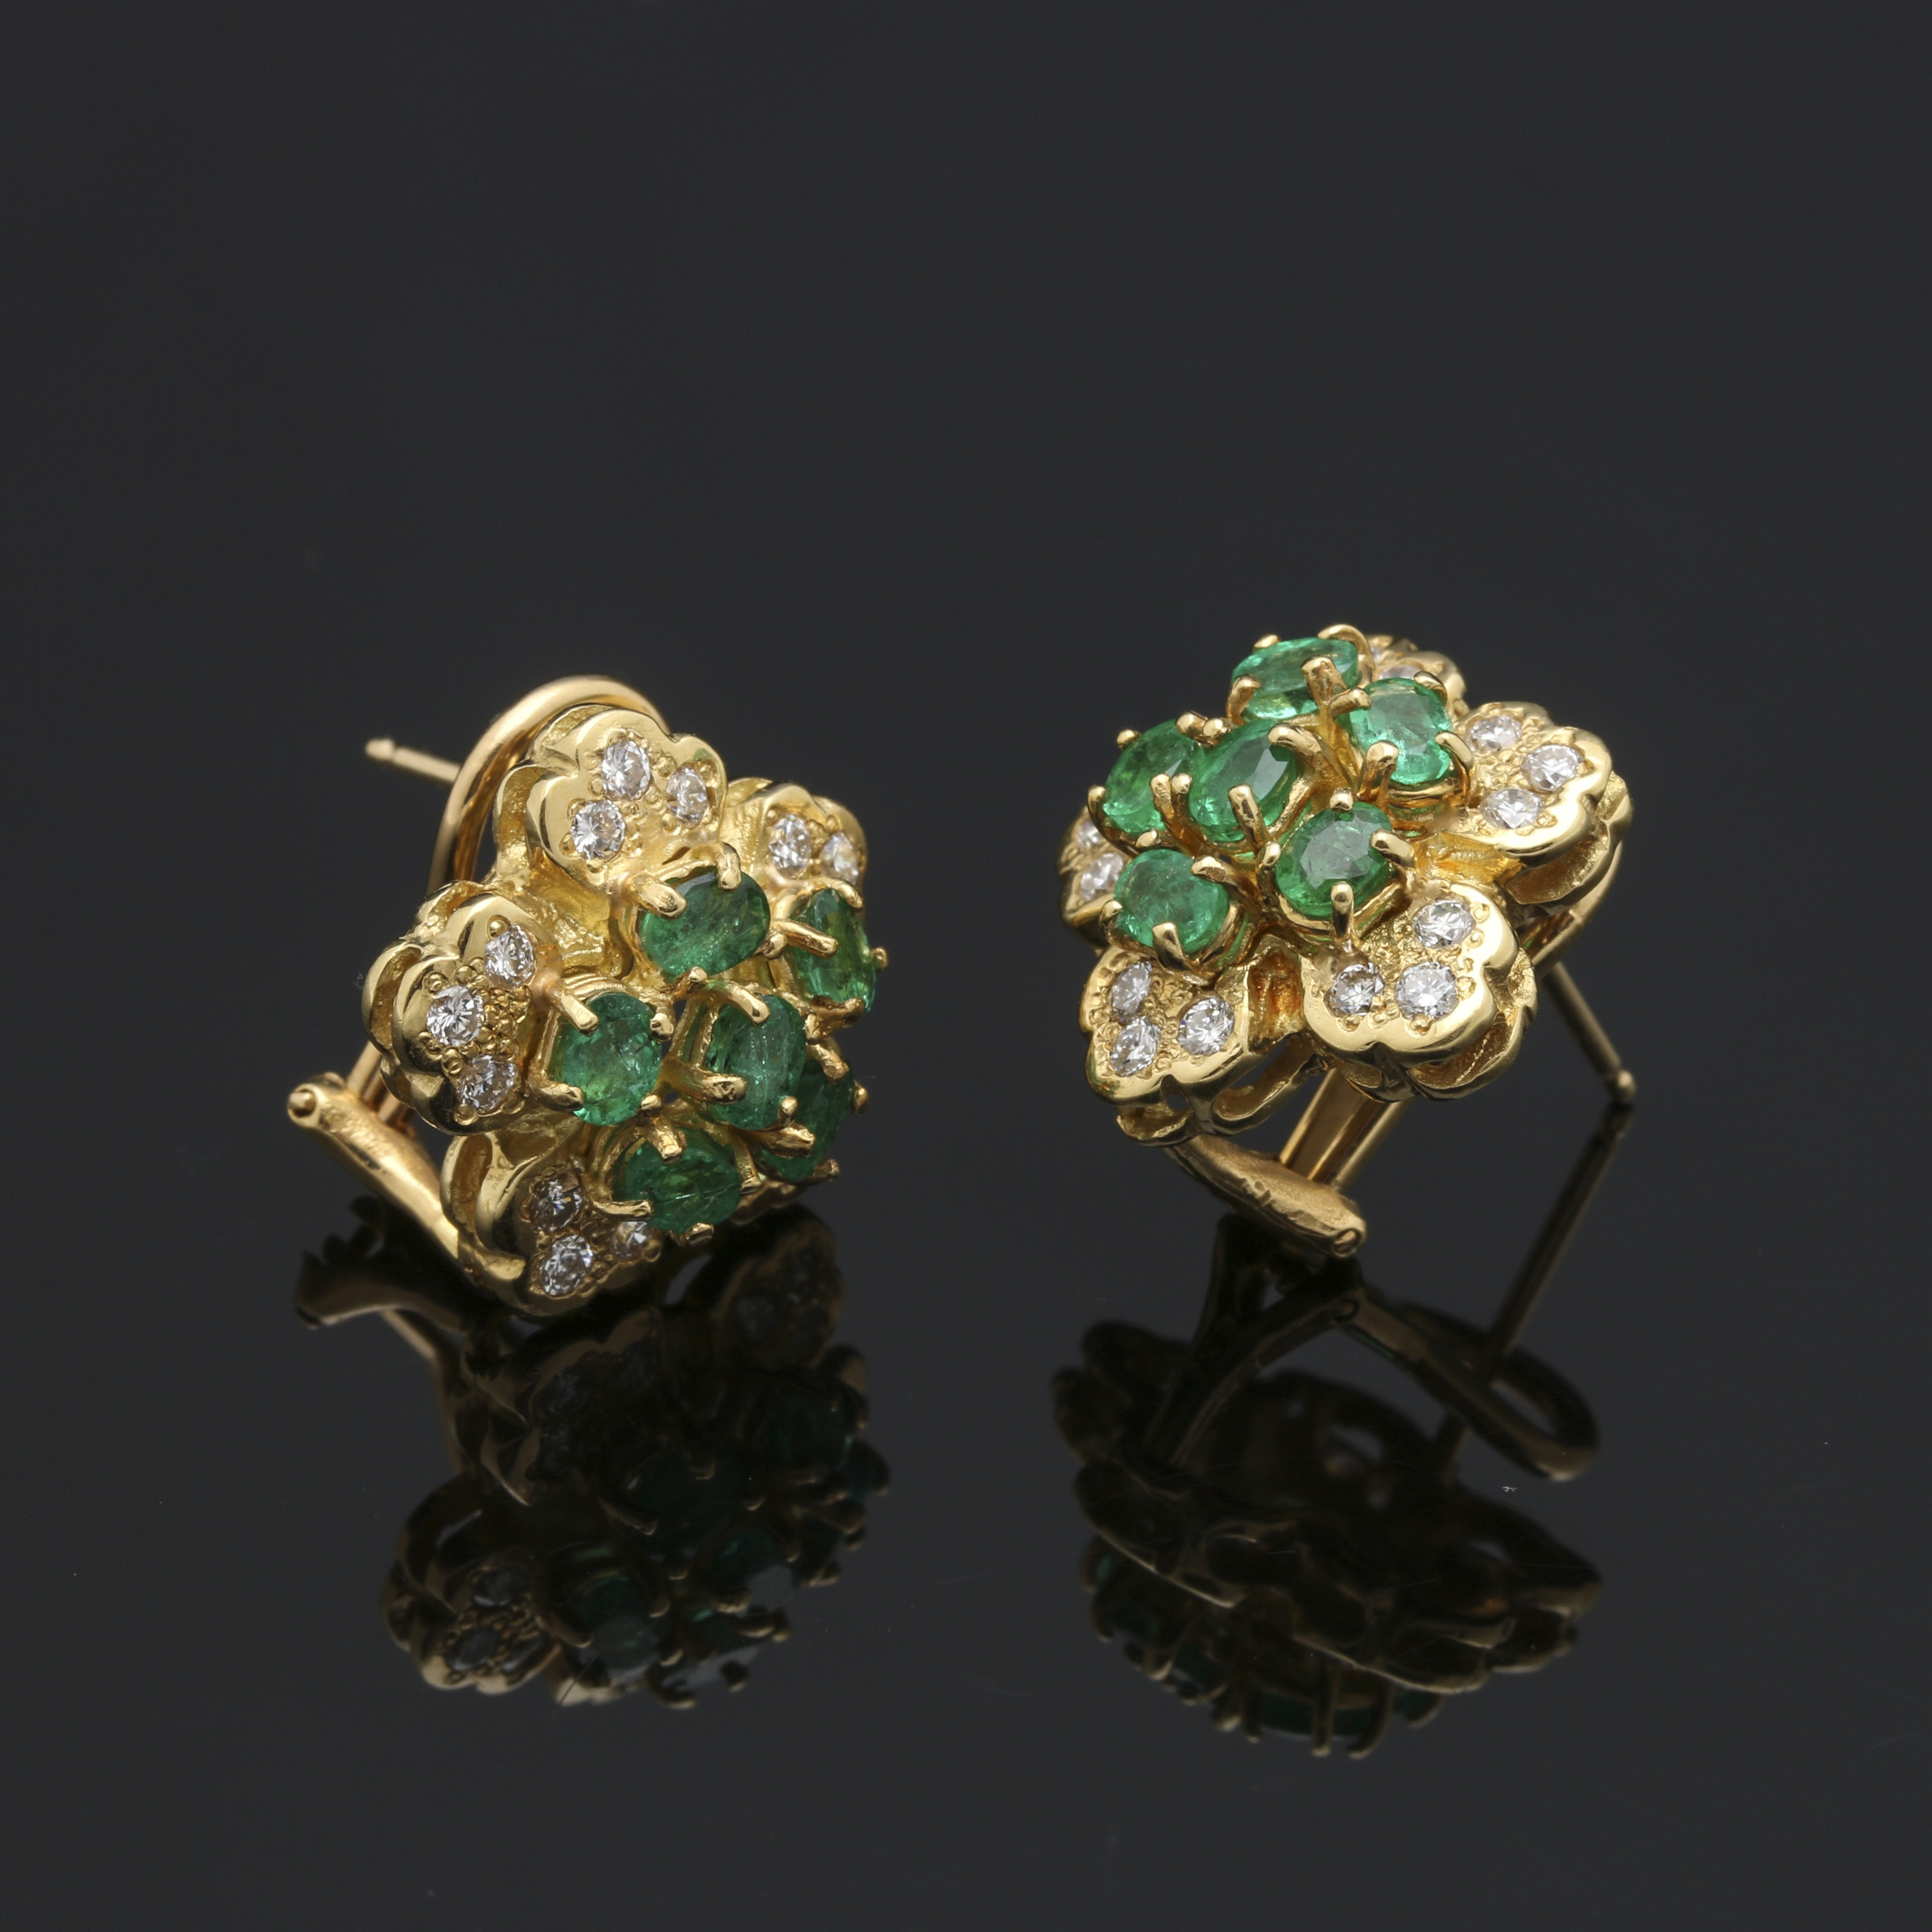 18K Yellow Gold 1.20 CTW Emerald and Diamond Earrings